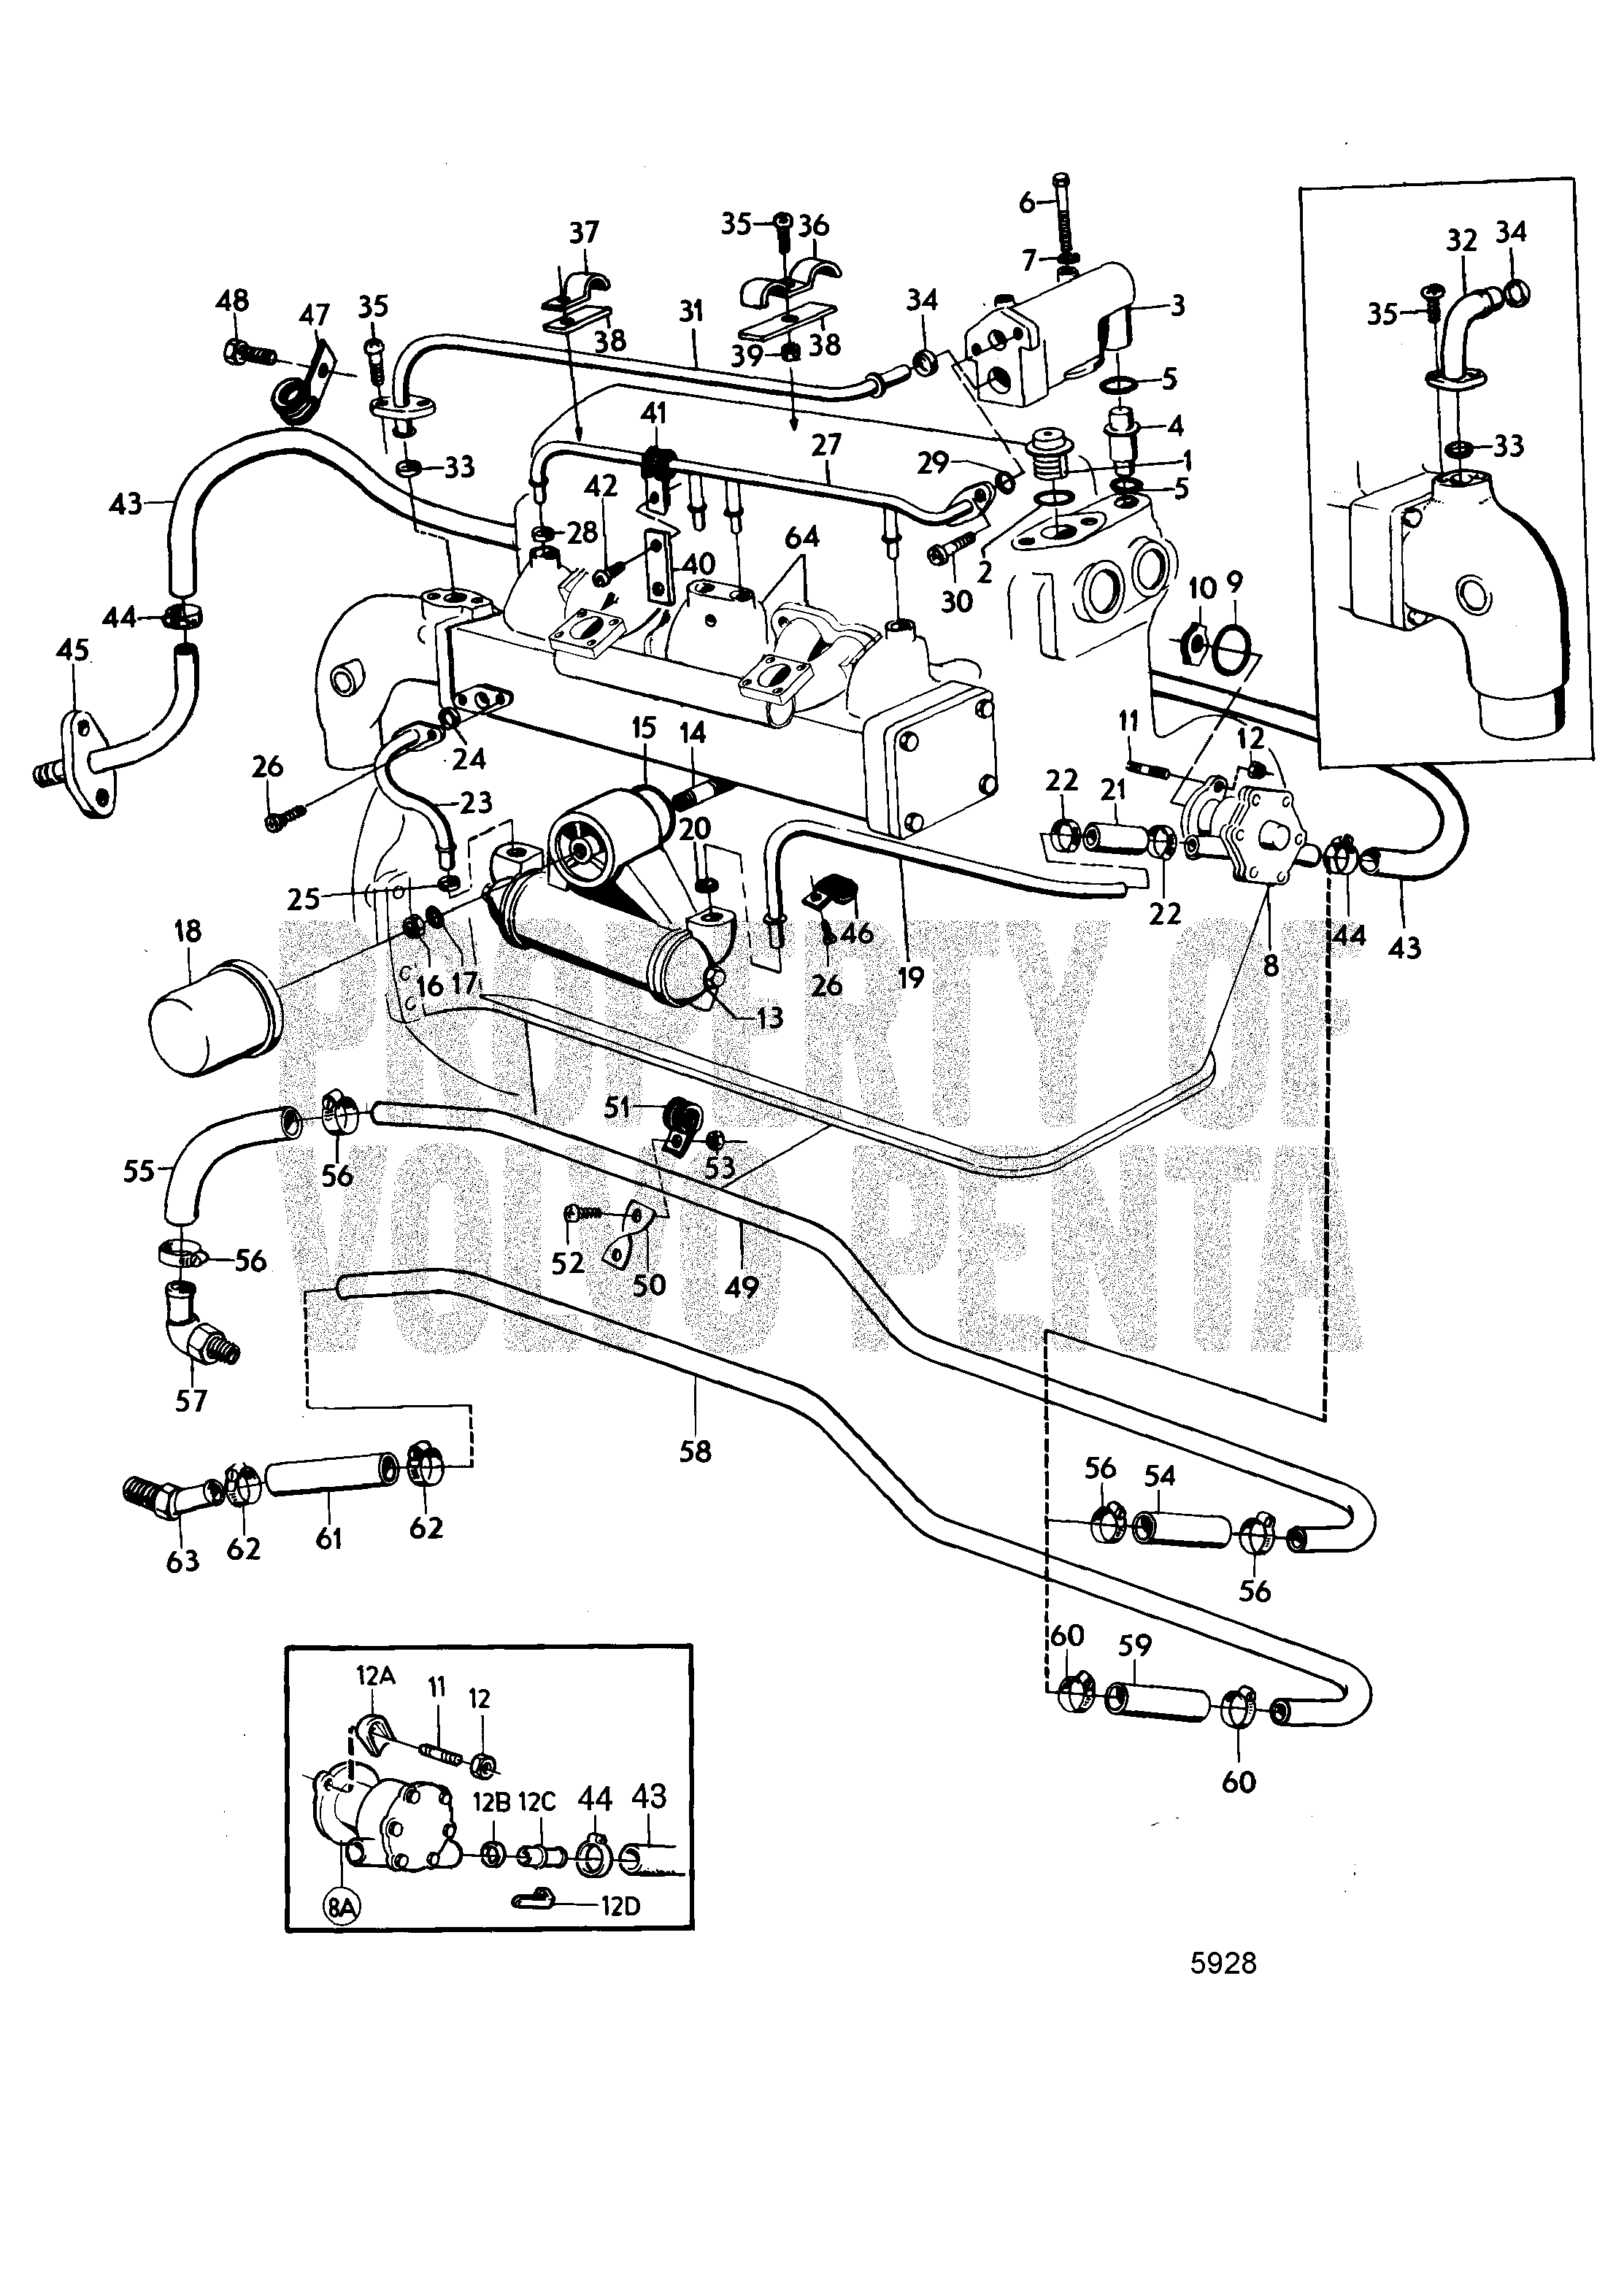 Volvo Marine Diesel Engine Diagram. Volvo. Auto Wiring Diagram